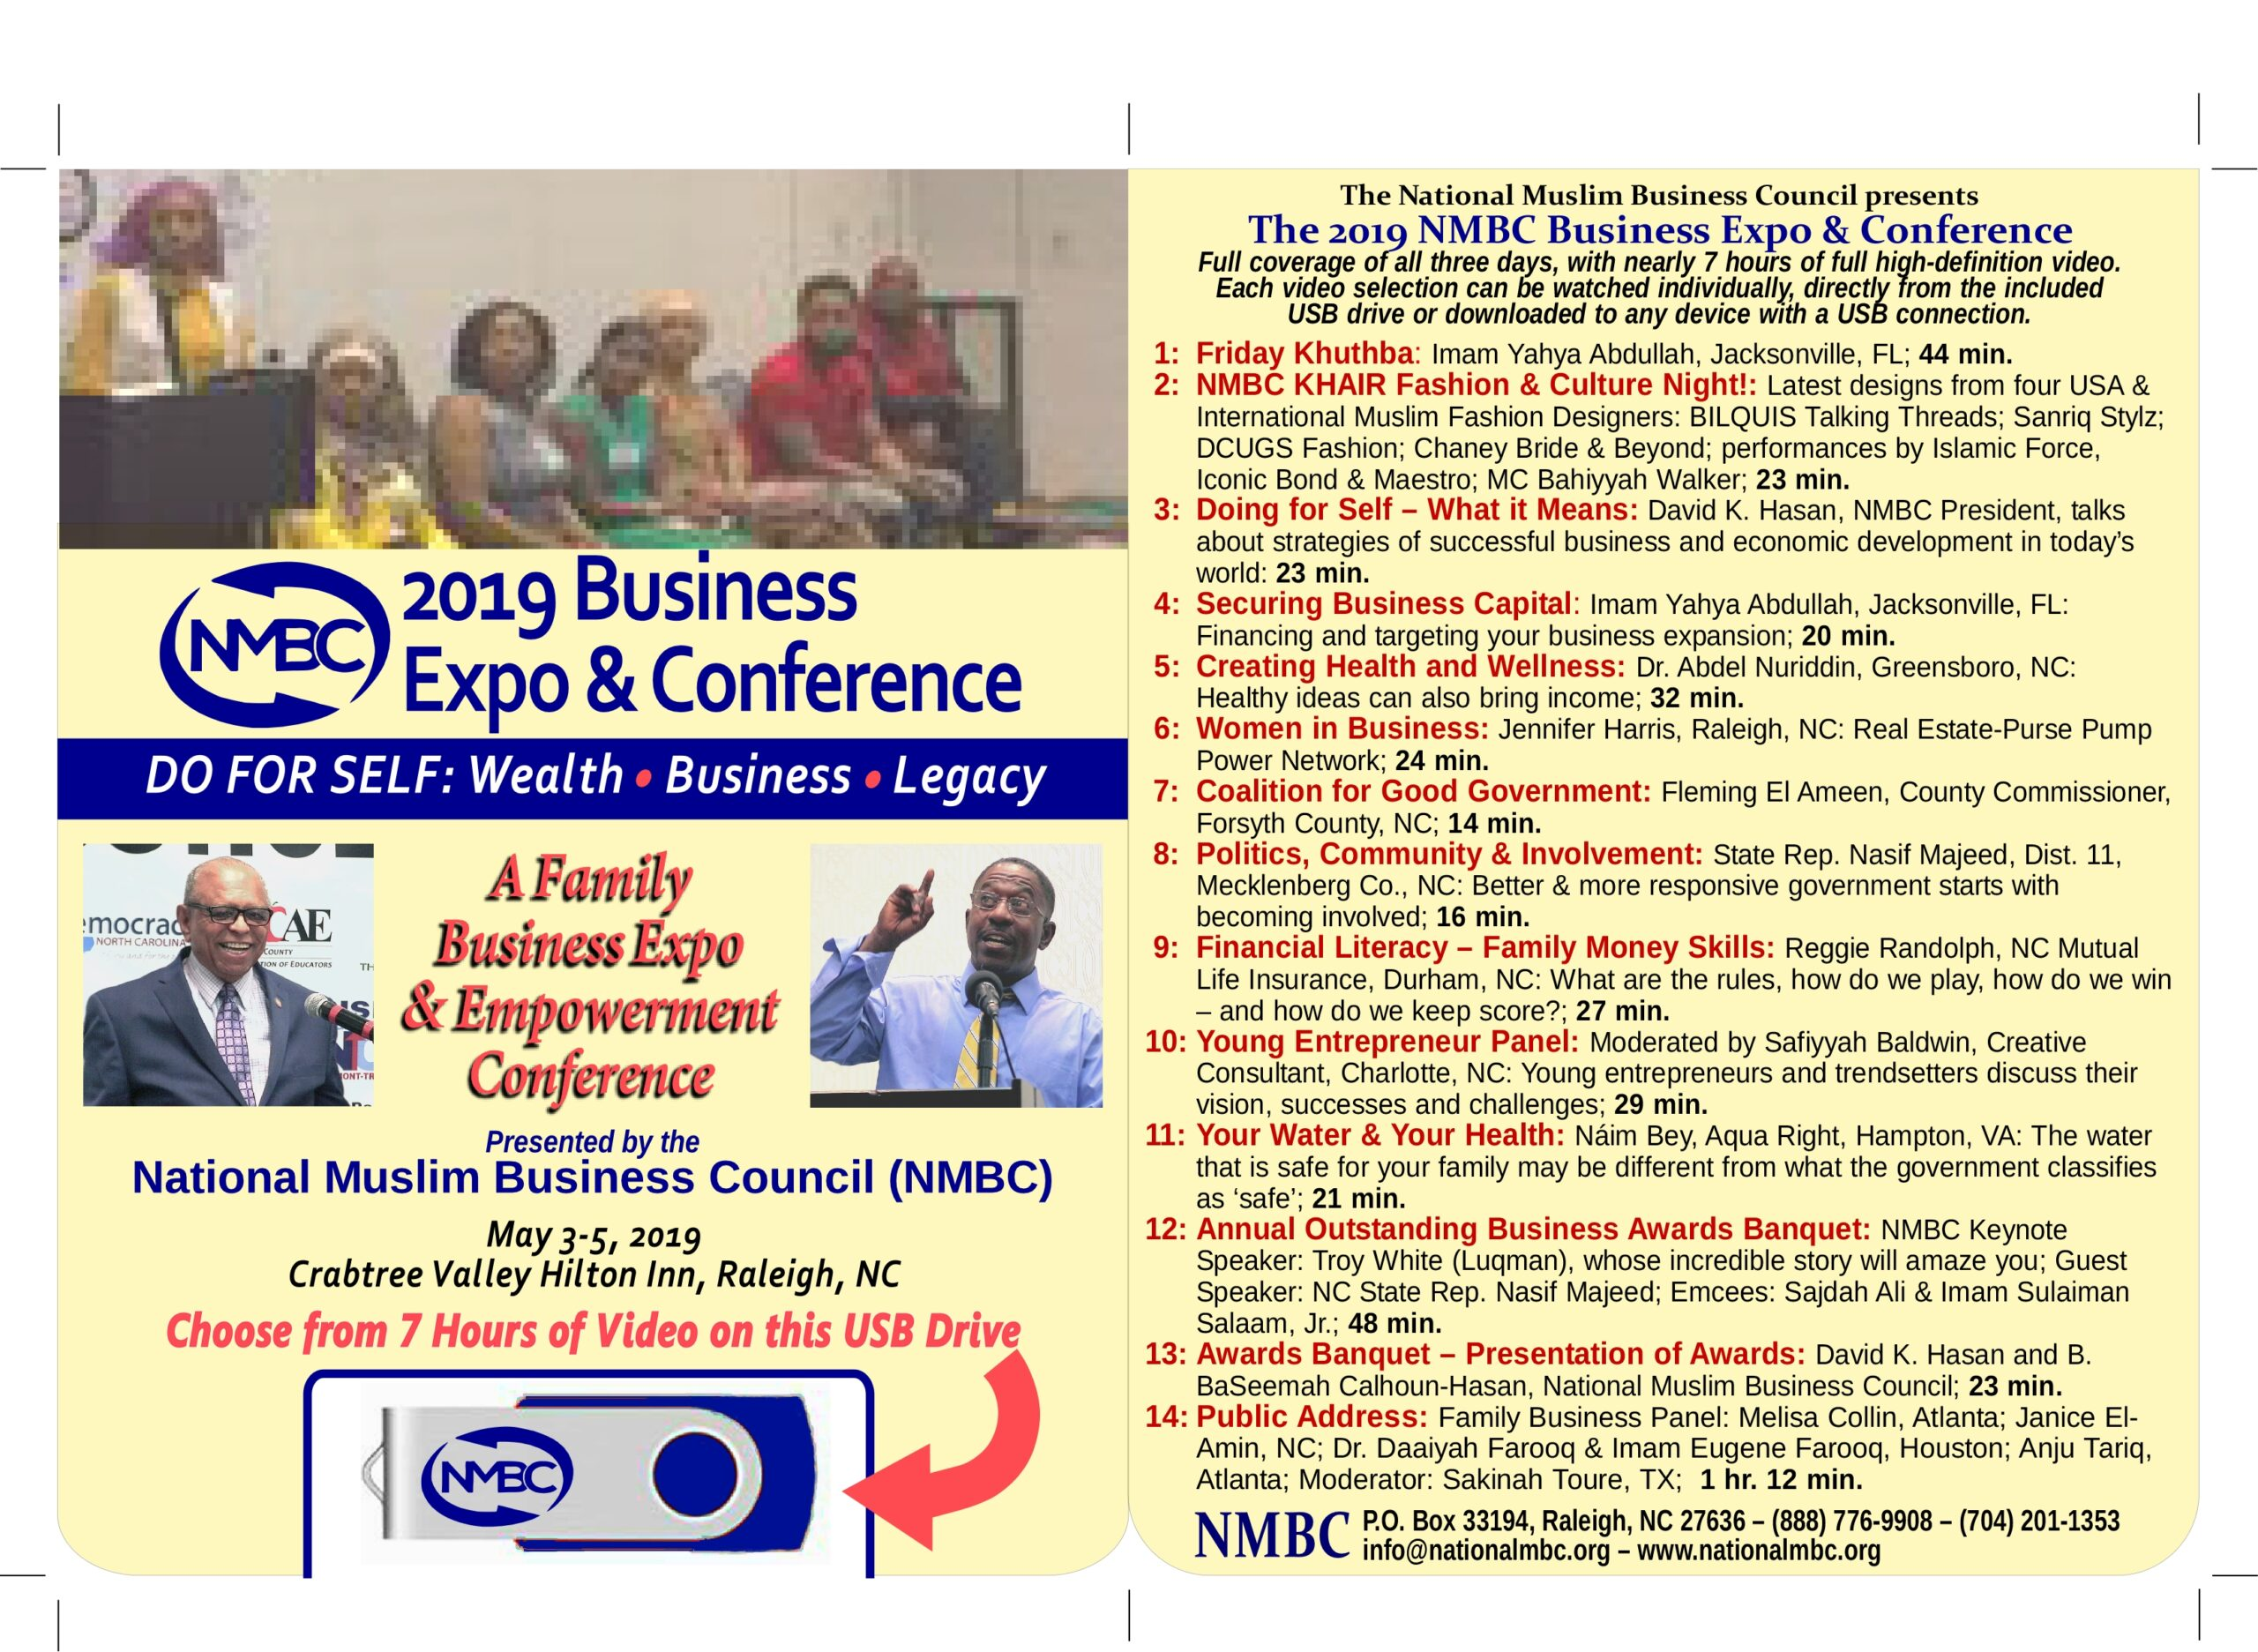 2019 Conference Program DVD For Sale